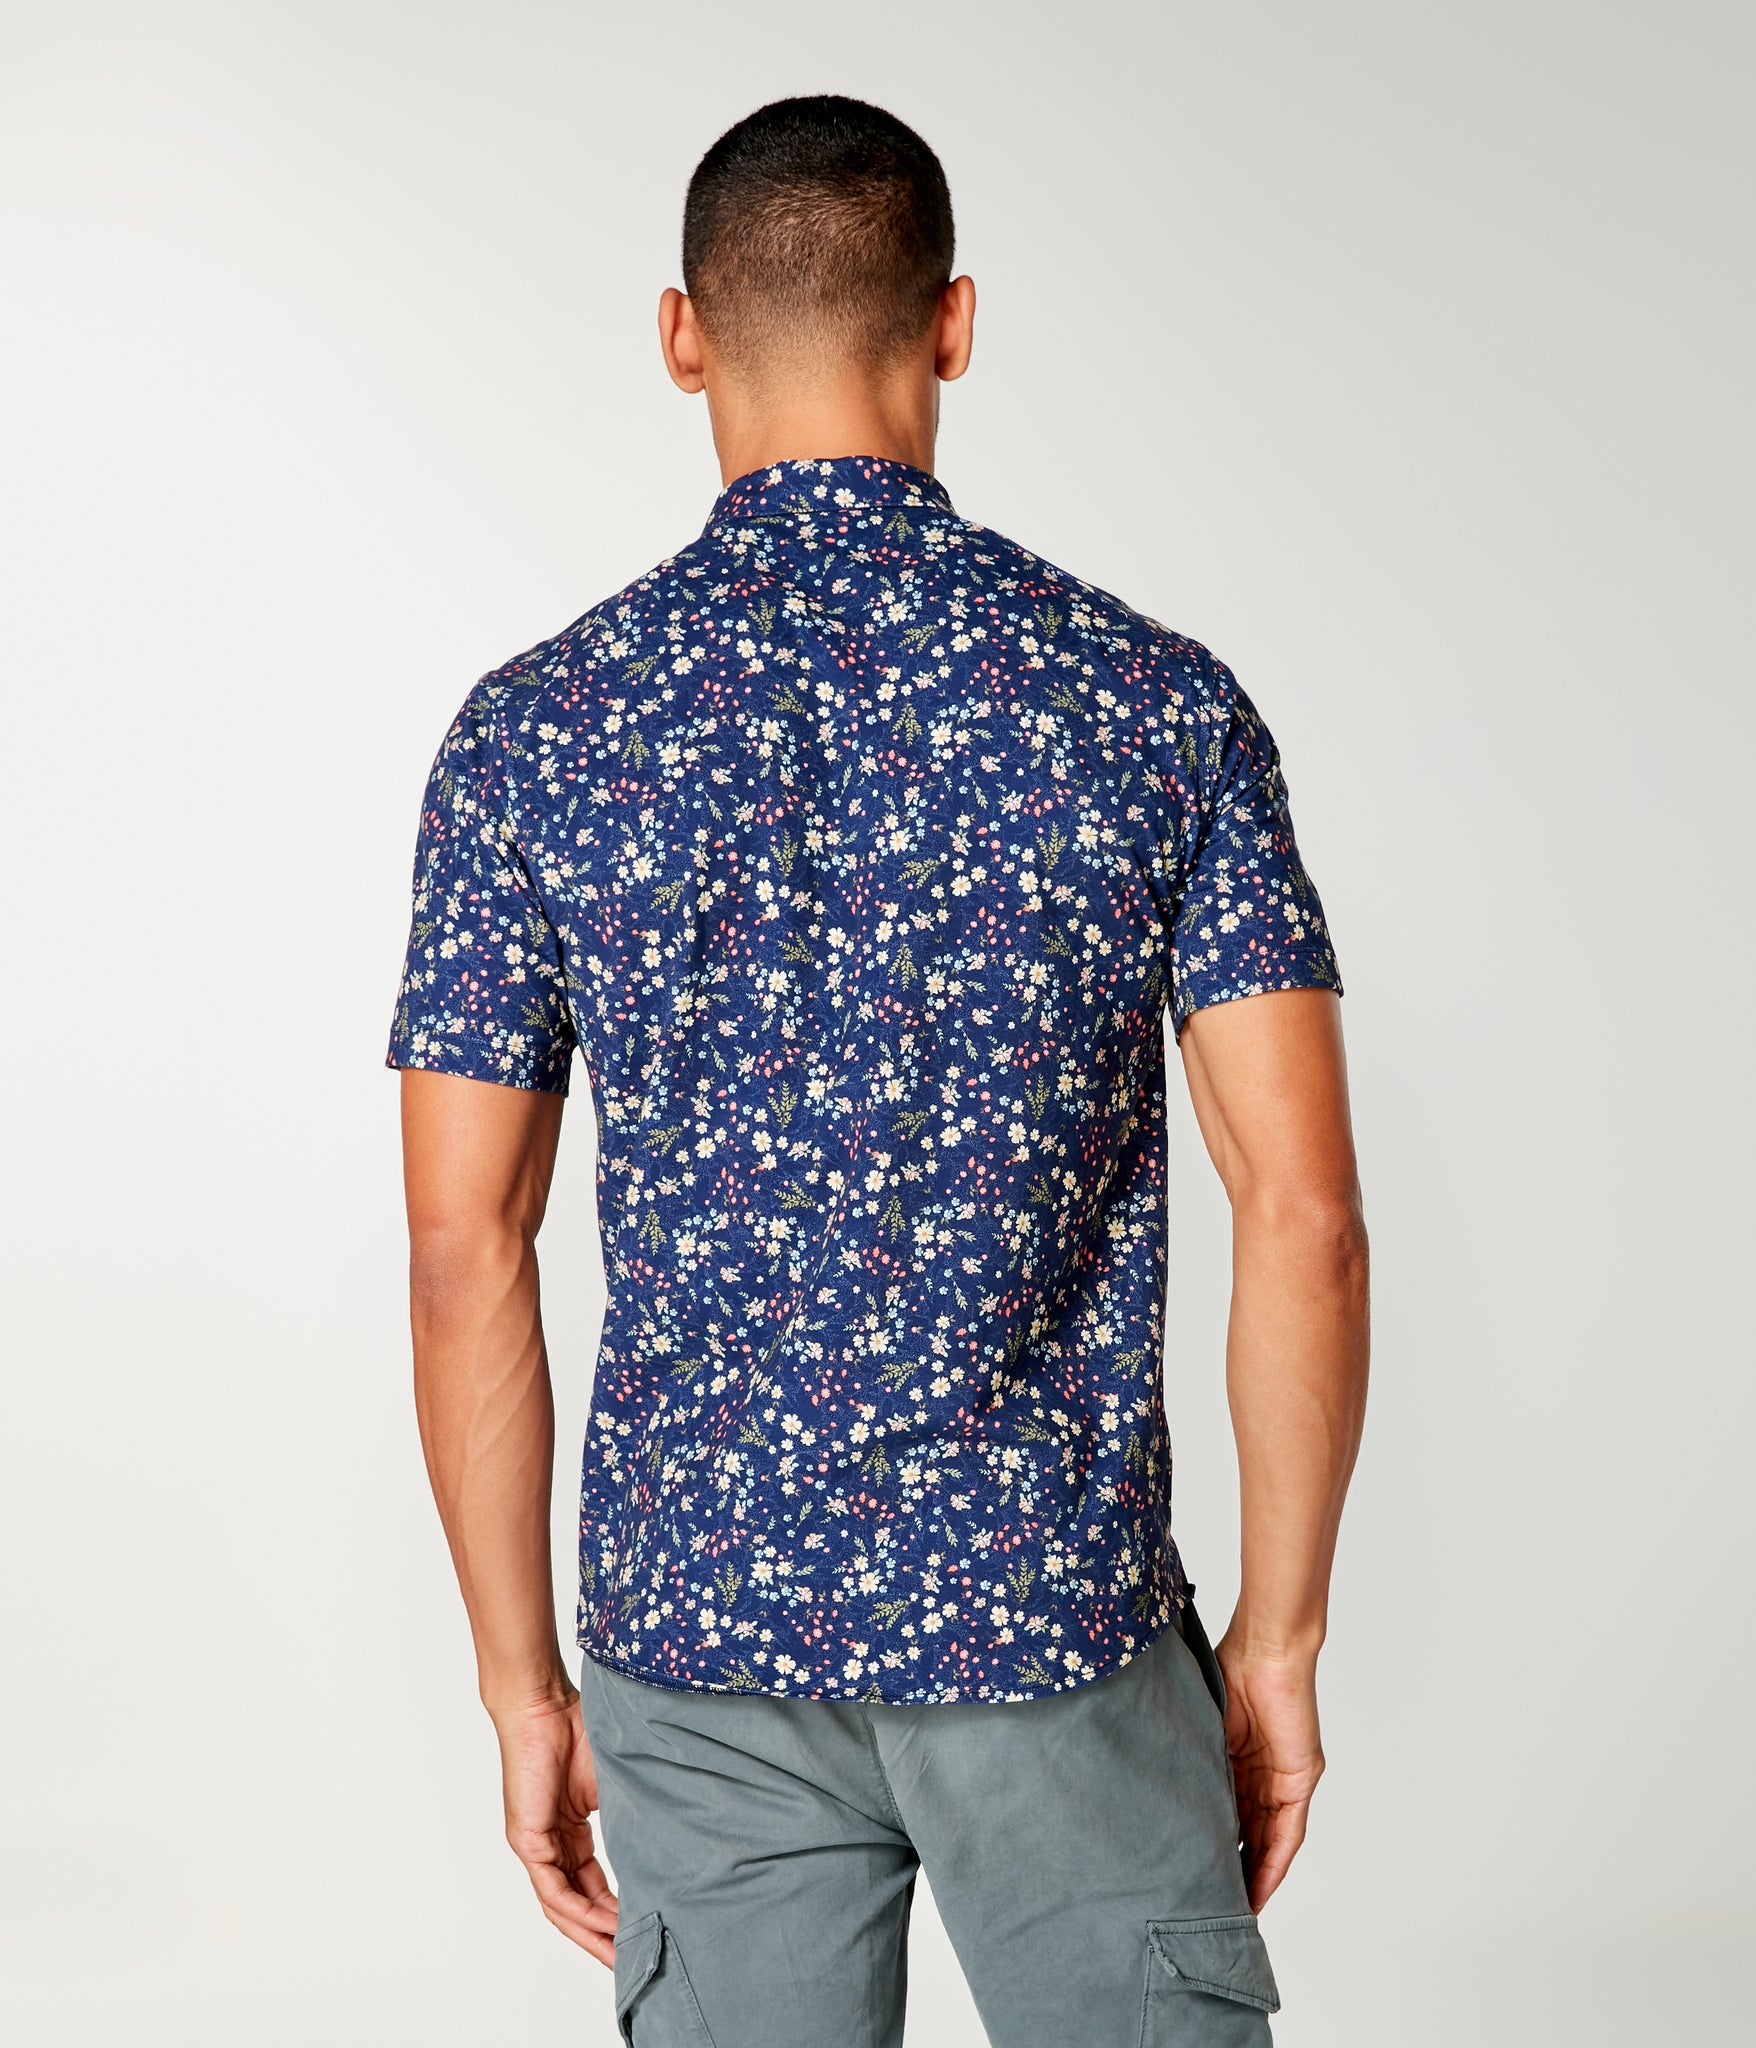 Flex Pro Jersey Printed Soft Shirt - Blue Hanabira Blooms